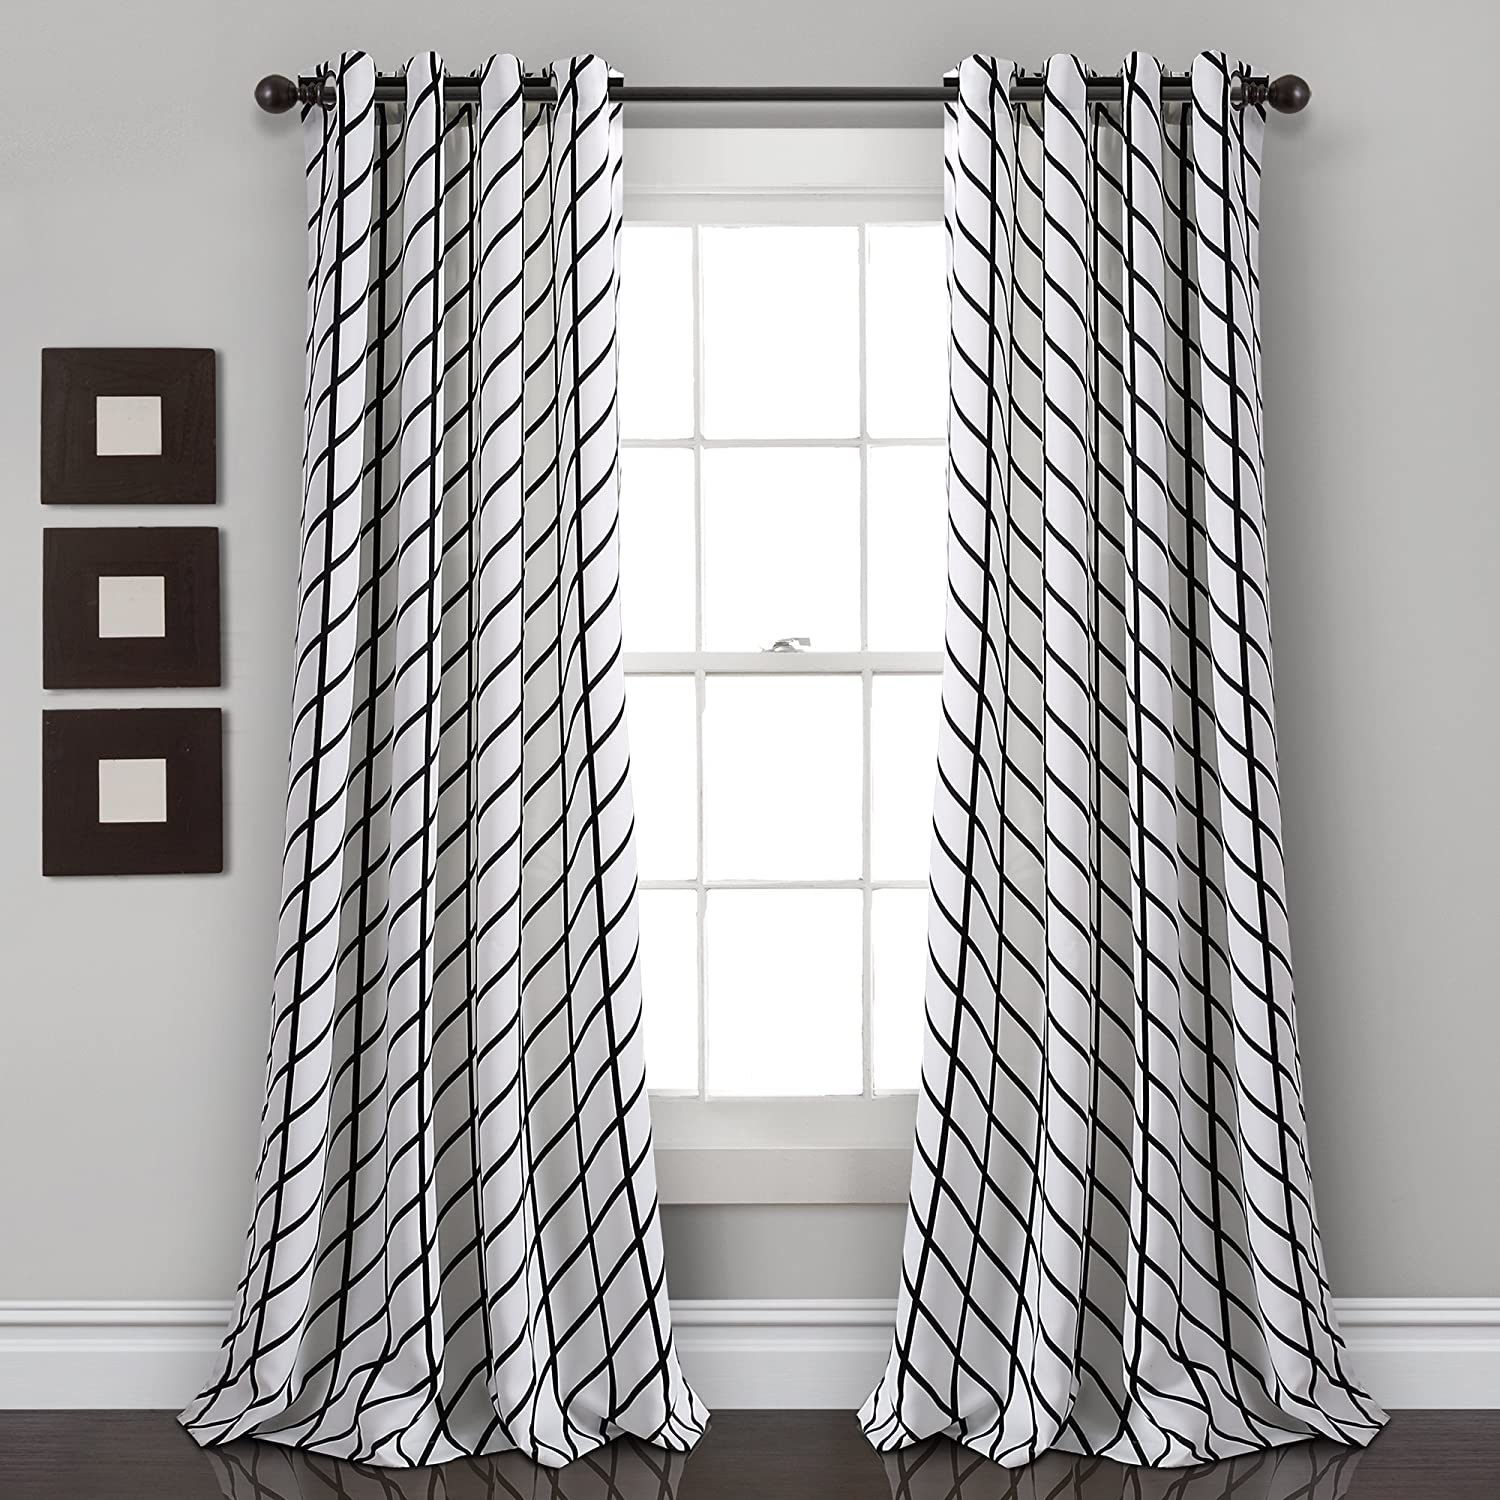 "Lush Decor Feather Arrow Geo Room-Darkening Window Curtain Set (84"" x 52""), White & Black"